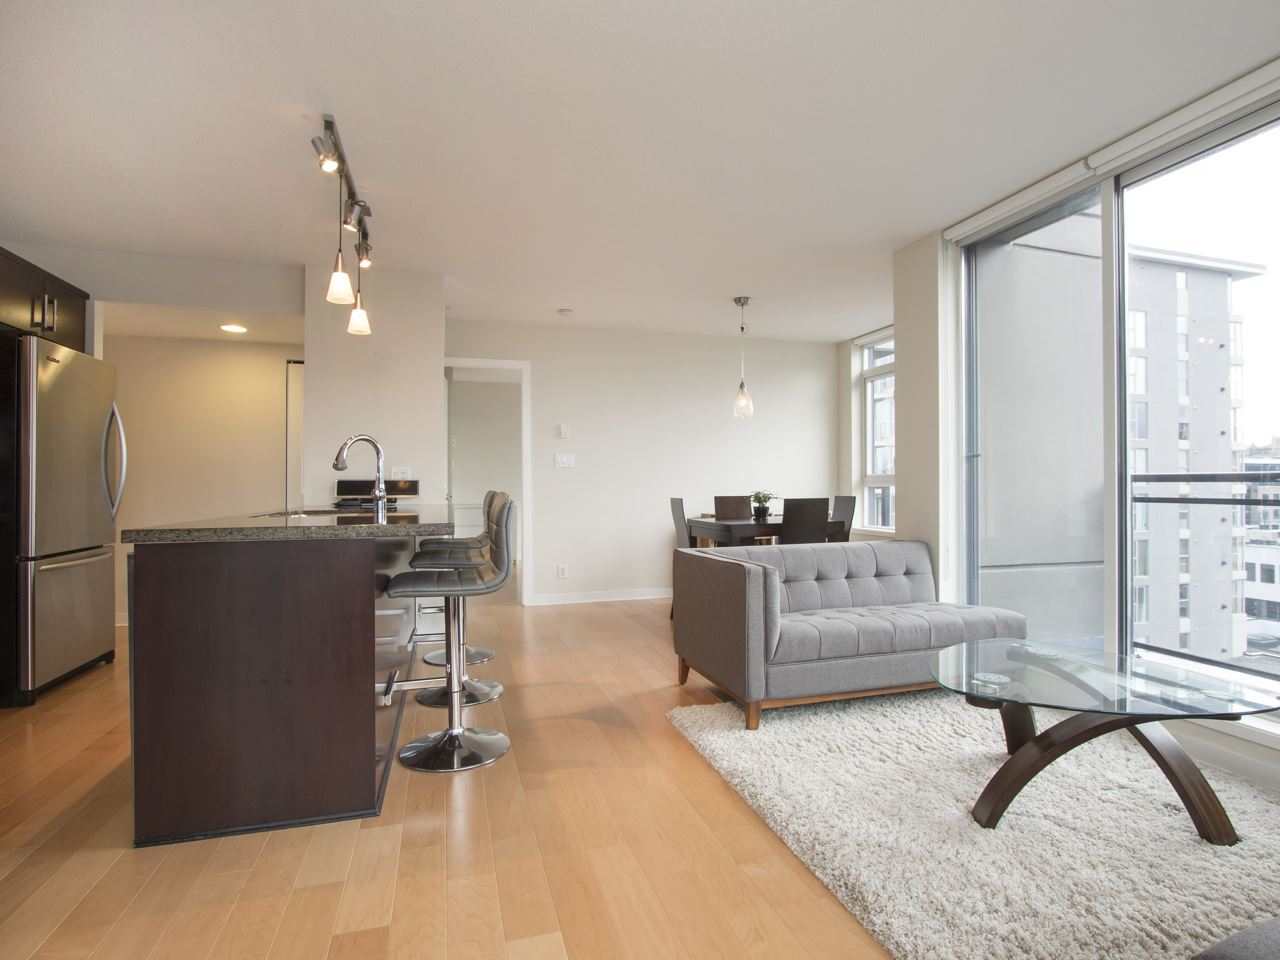 Photo 4: 1002 1650 W 7TH AVENUE in Vancouver: Fairview VW Condo for sale (Vancouver West)  : MLS® # R2022214